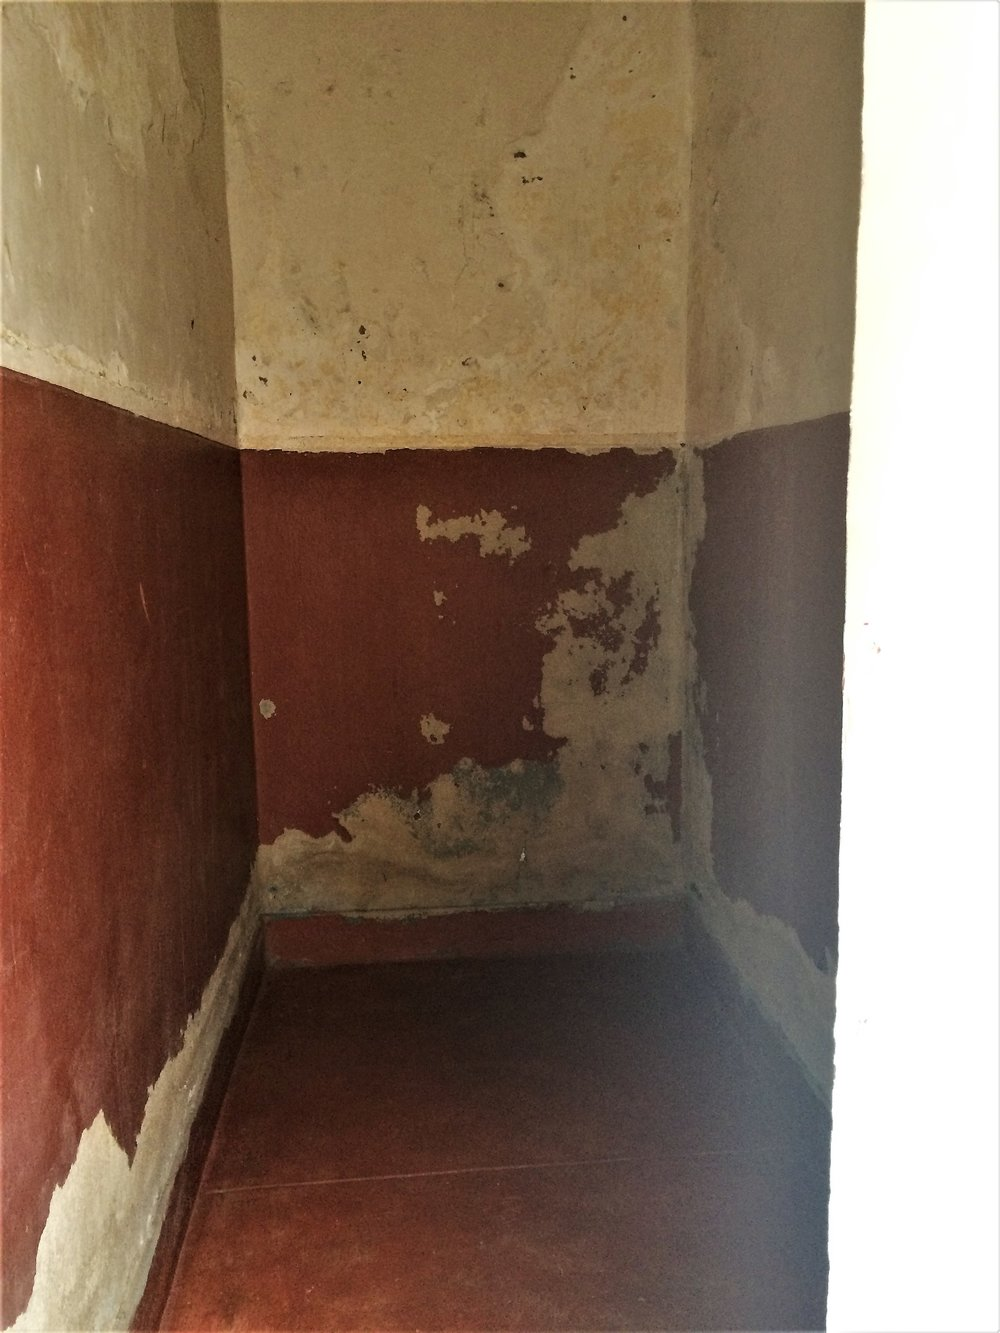 The men's solitary cells, which are no more than 10 ' by 4'.